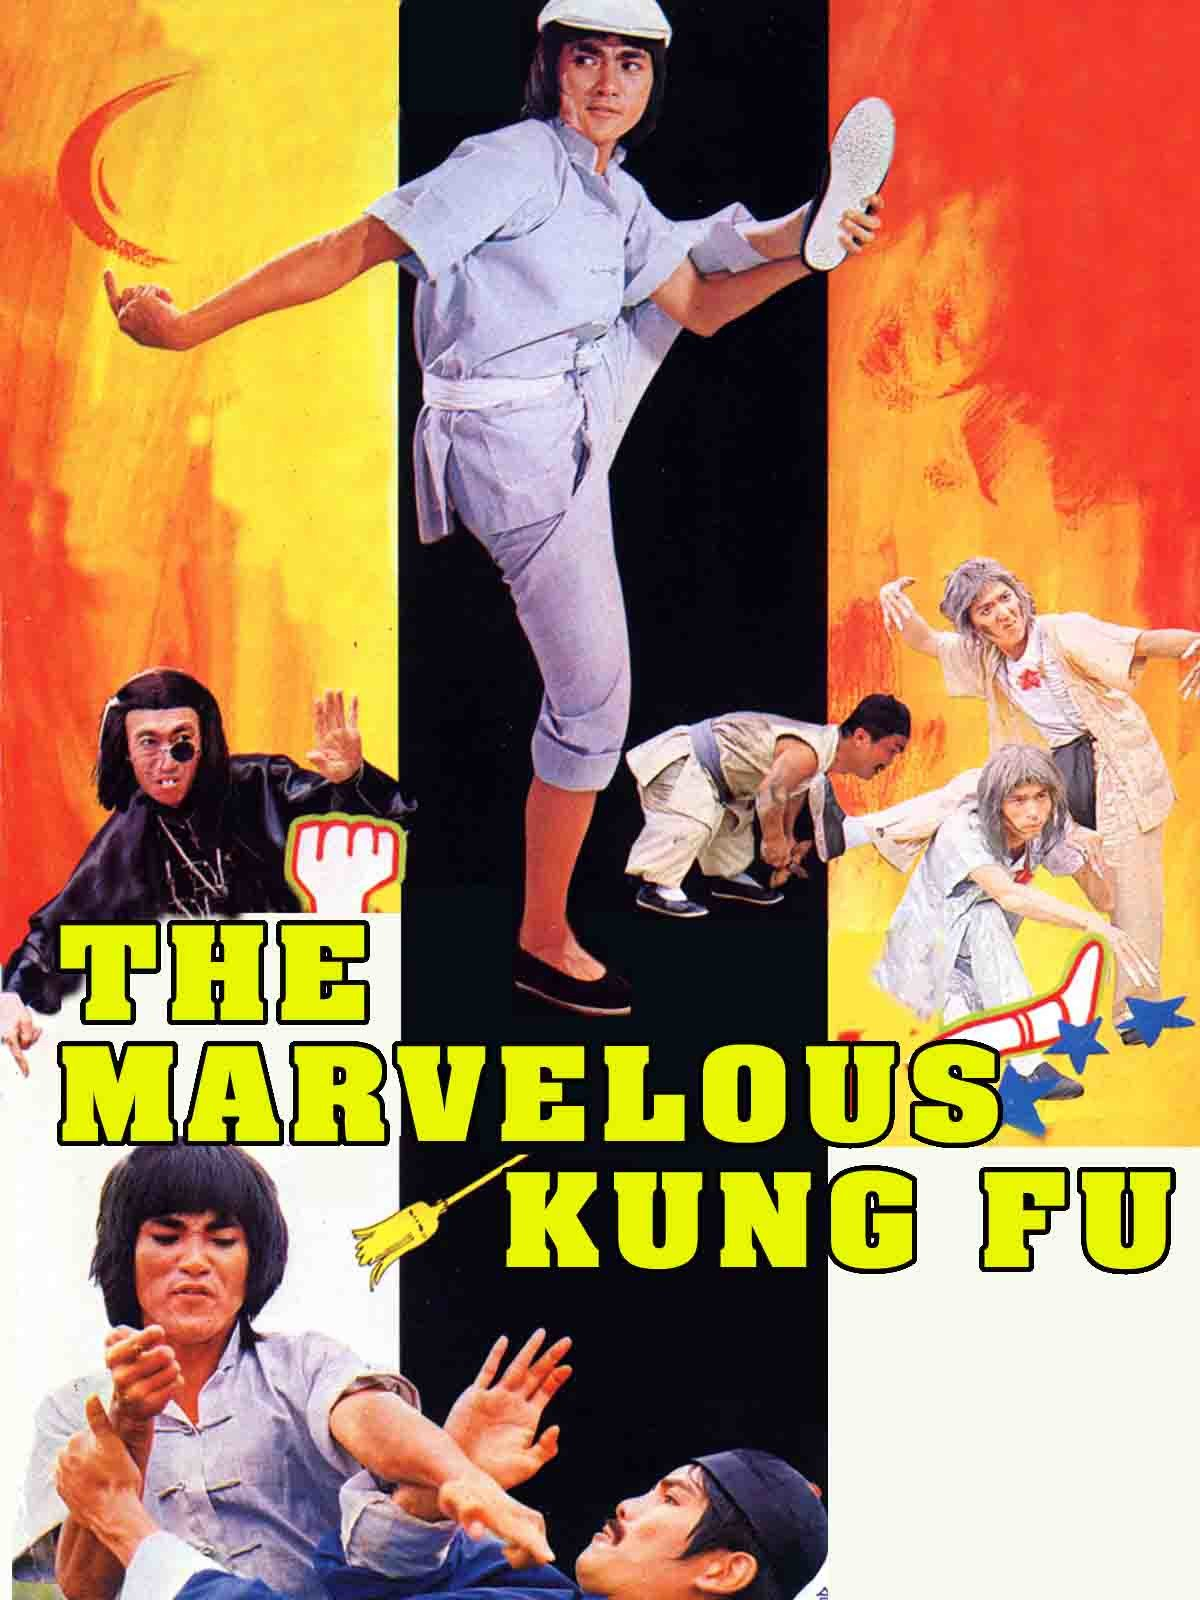 The Marvelous Kung Fu